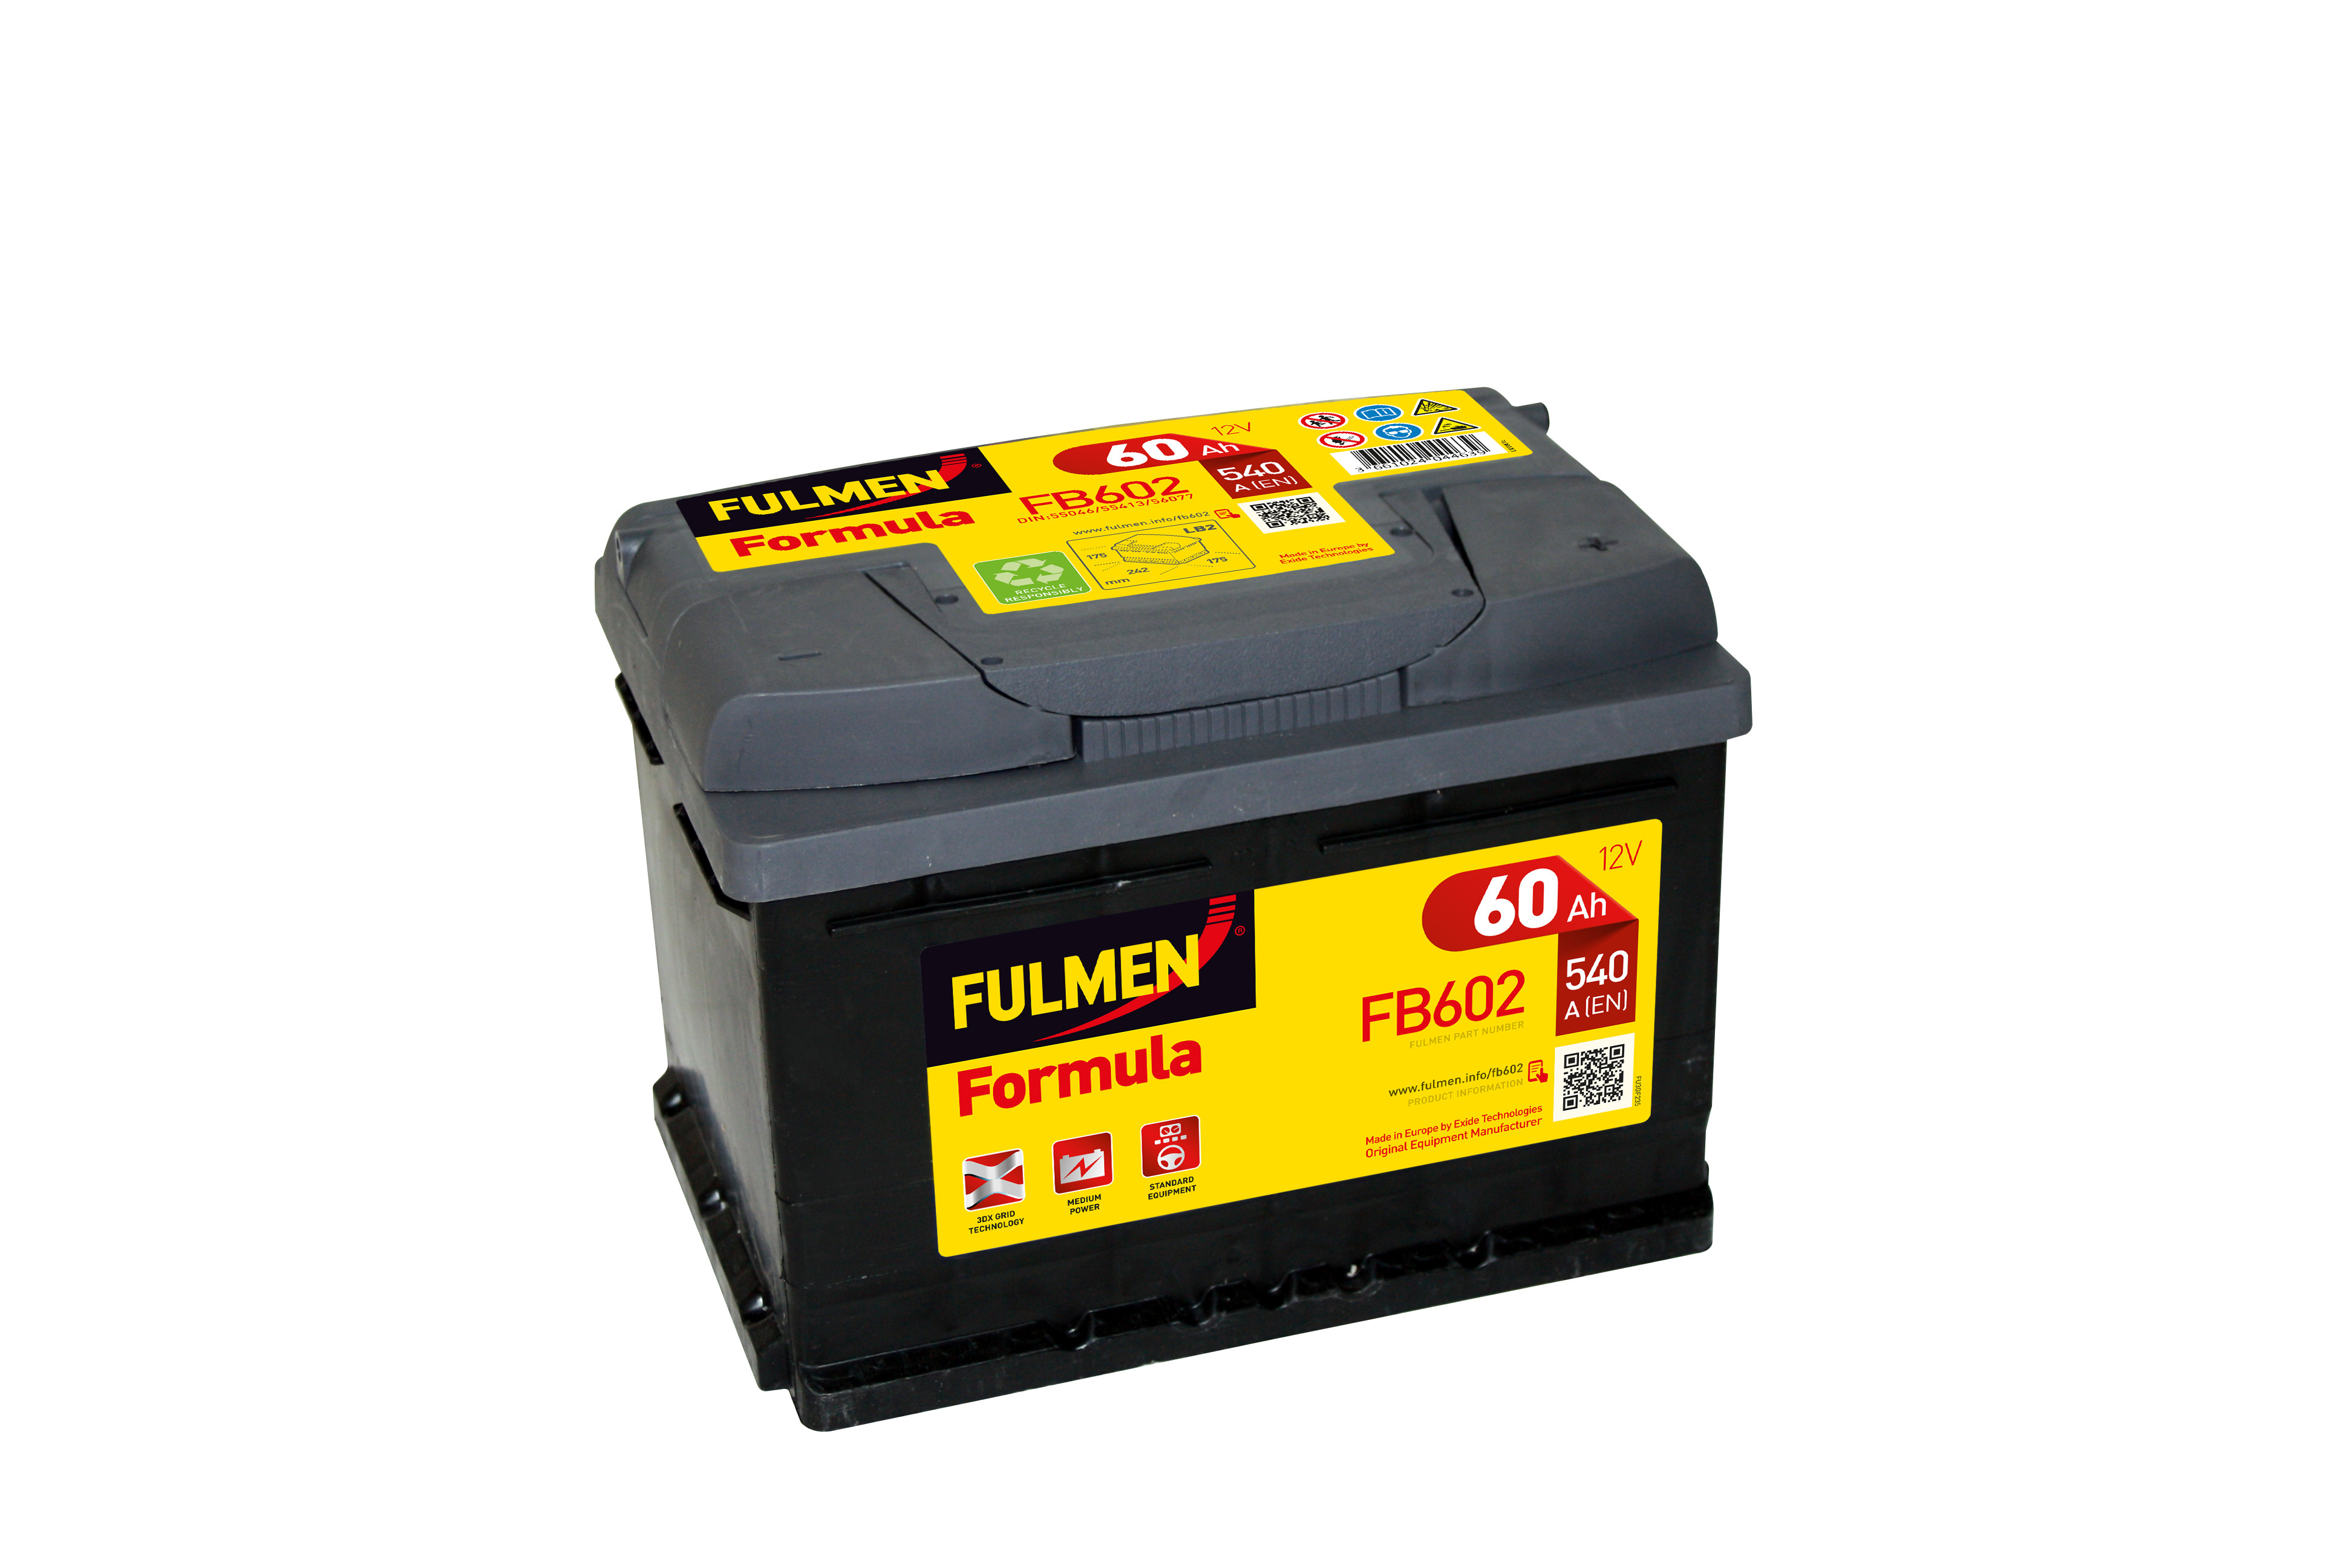 Car battery 12V 60Ah for Renault Clio II 3.0 Sport, V6 11/2000 -